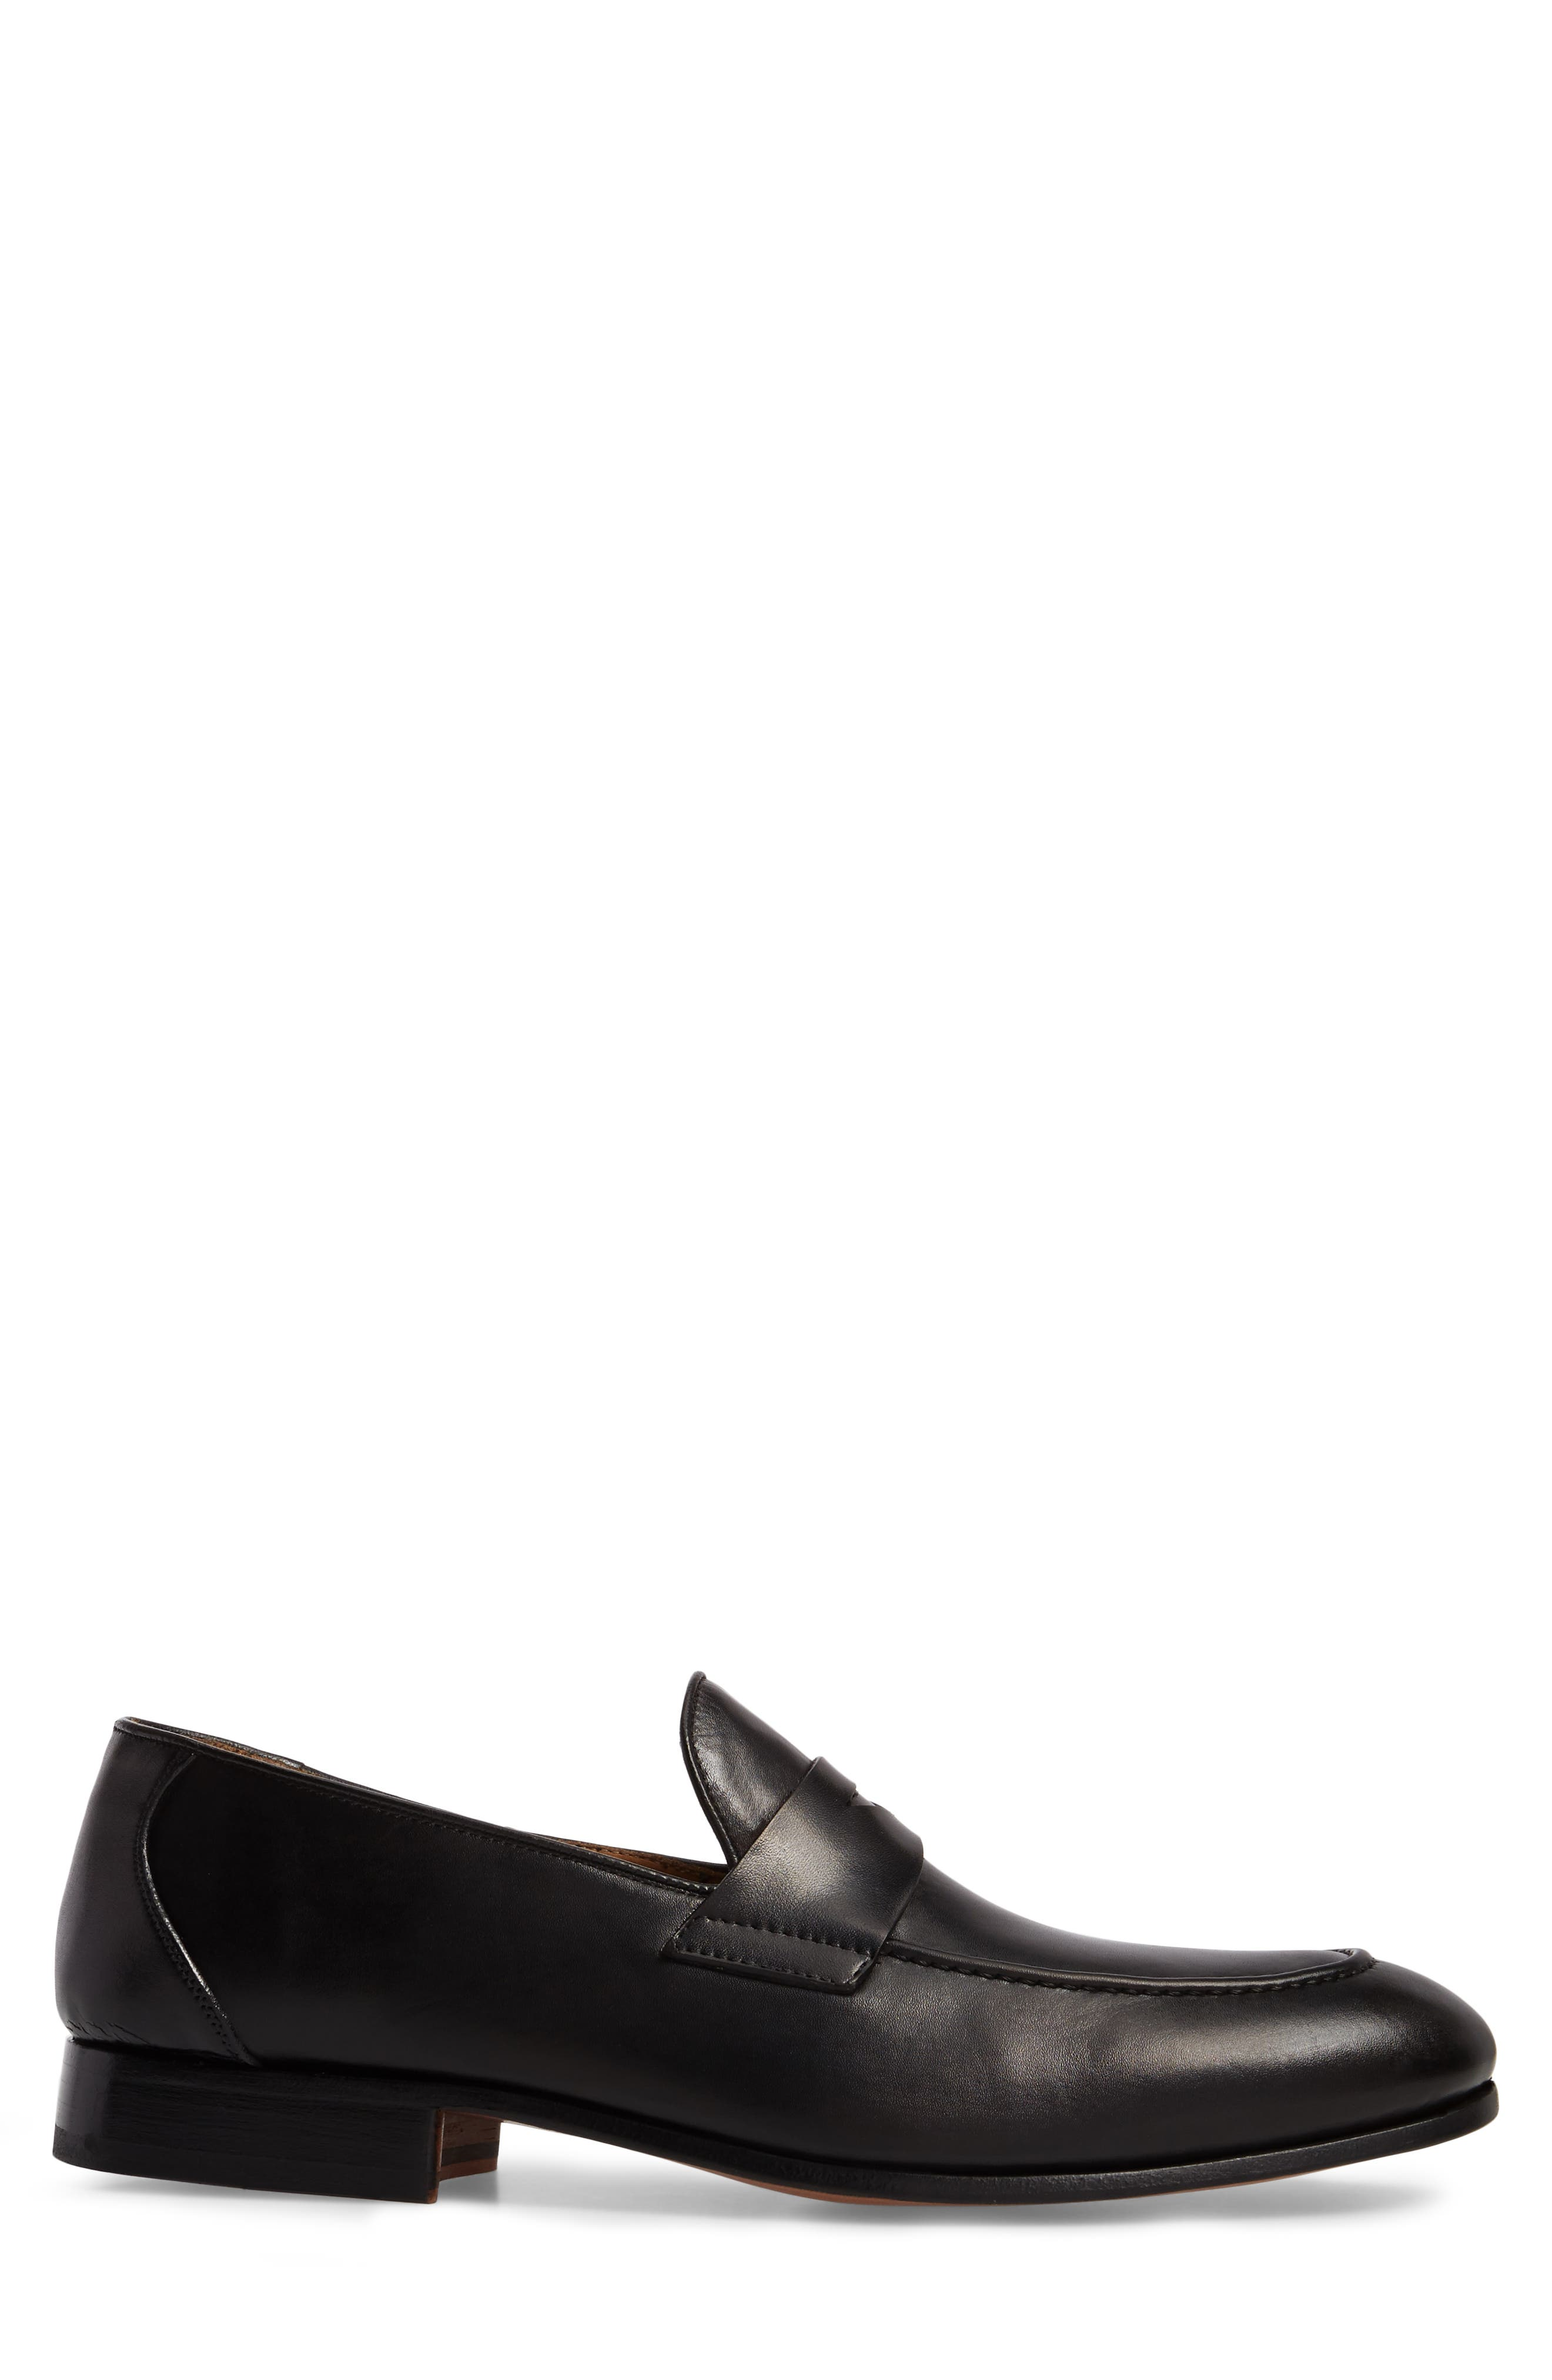 Alejo Apron Toe Penny Loafer,                             Alternate thumbnail 3, color,                             BLACK LEATHER